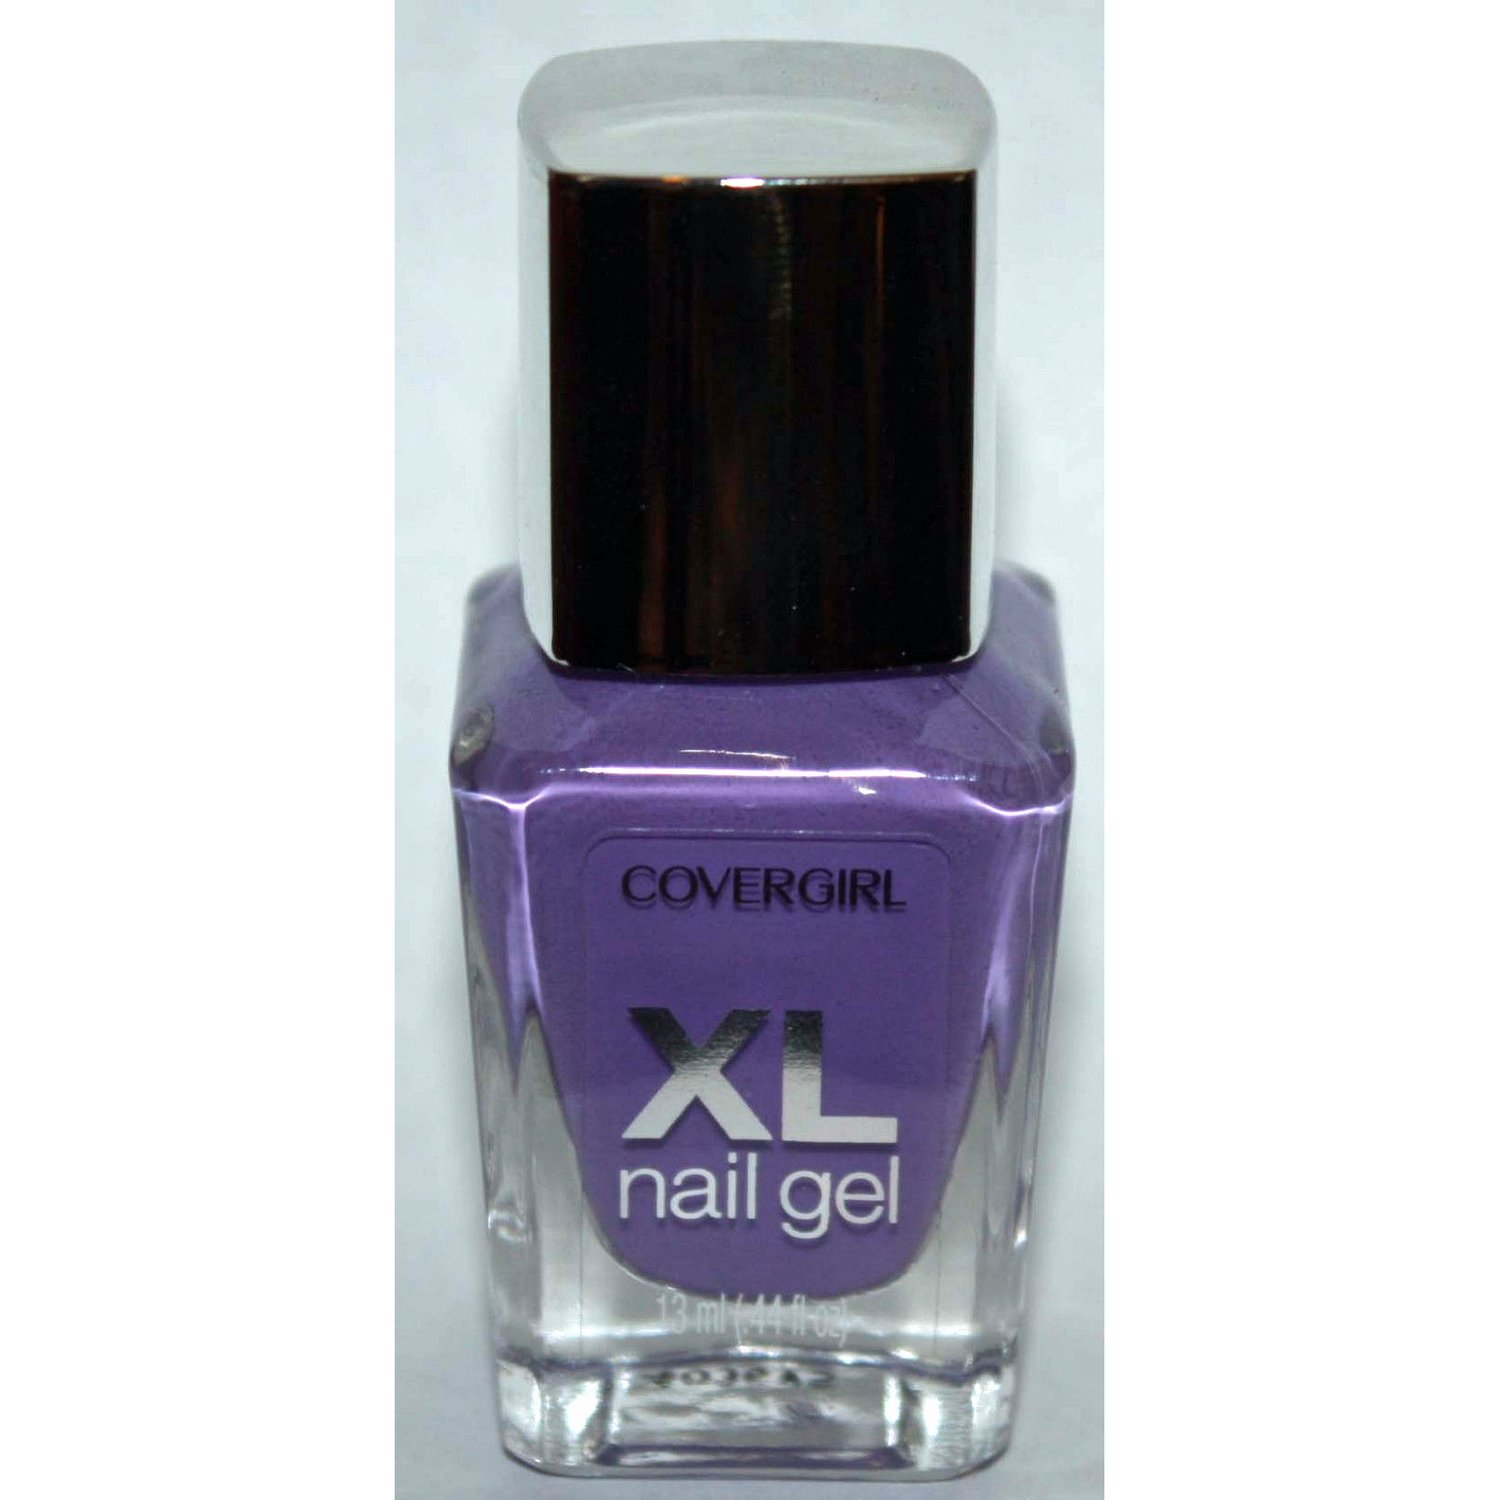 Covergirl XL Nail Gel Polish #770 Plumped-up Plum 44 oz